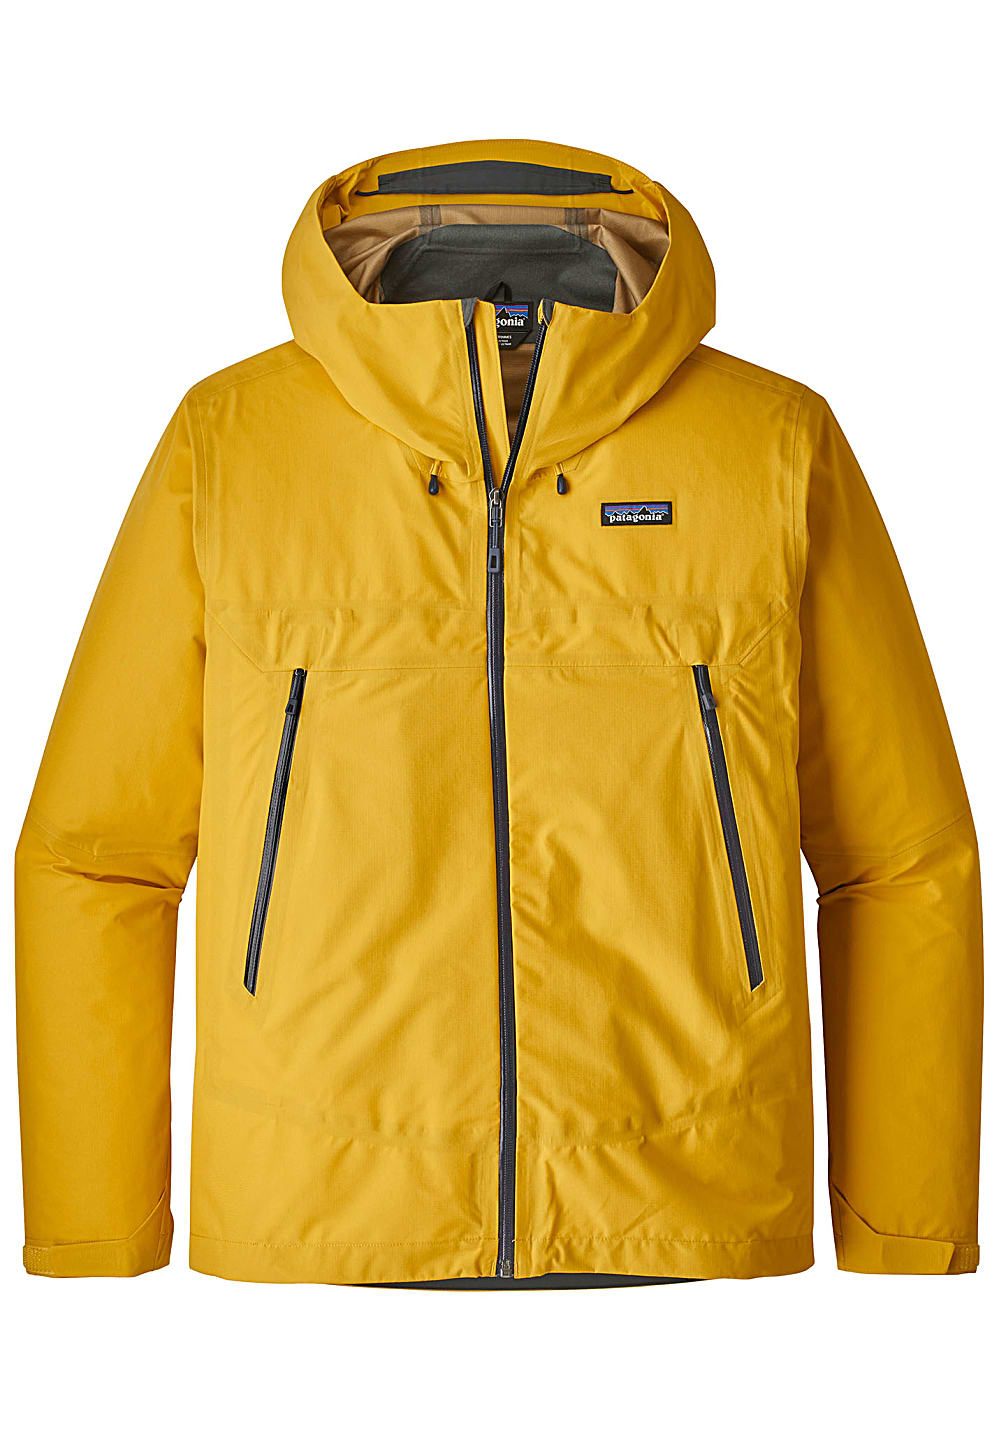 quality design 97456 ecda2 Patagonia Cloud Ridge - Outdoorjacke für Herren - Gelb